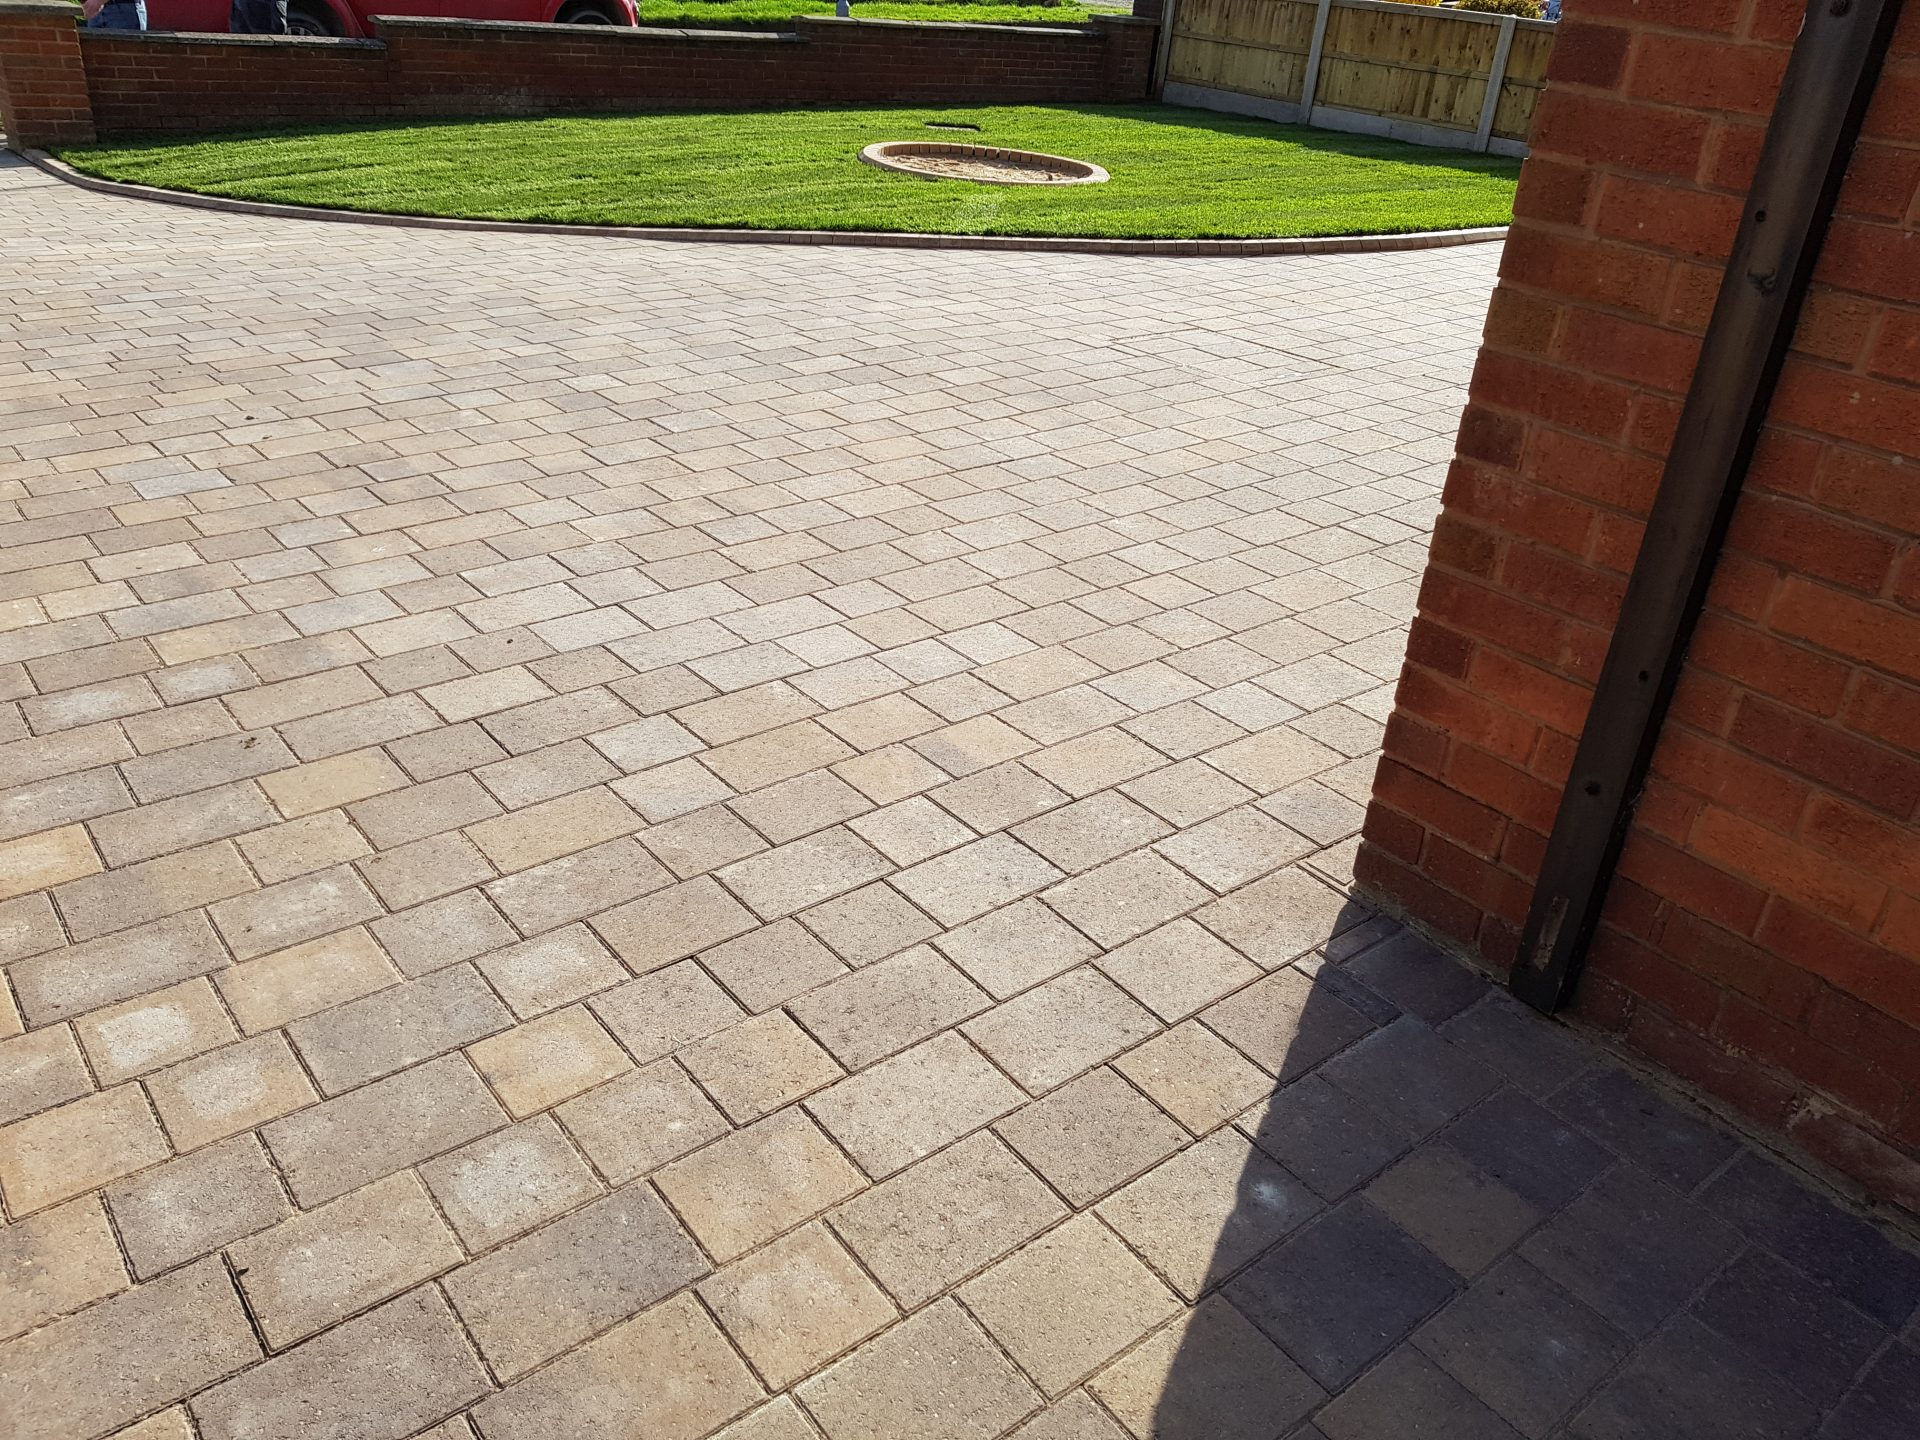 Block paved driveway and lawn area